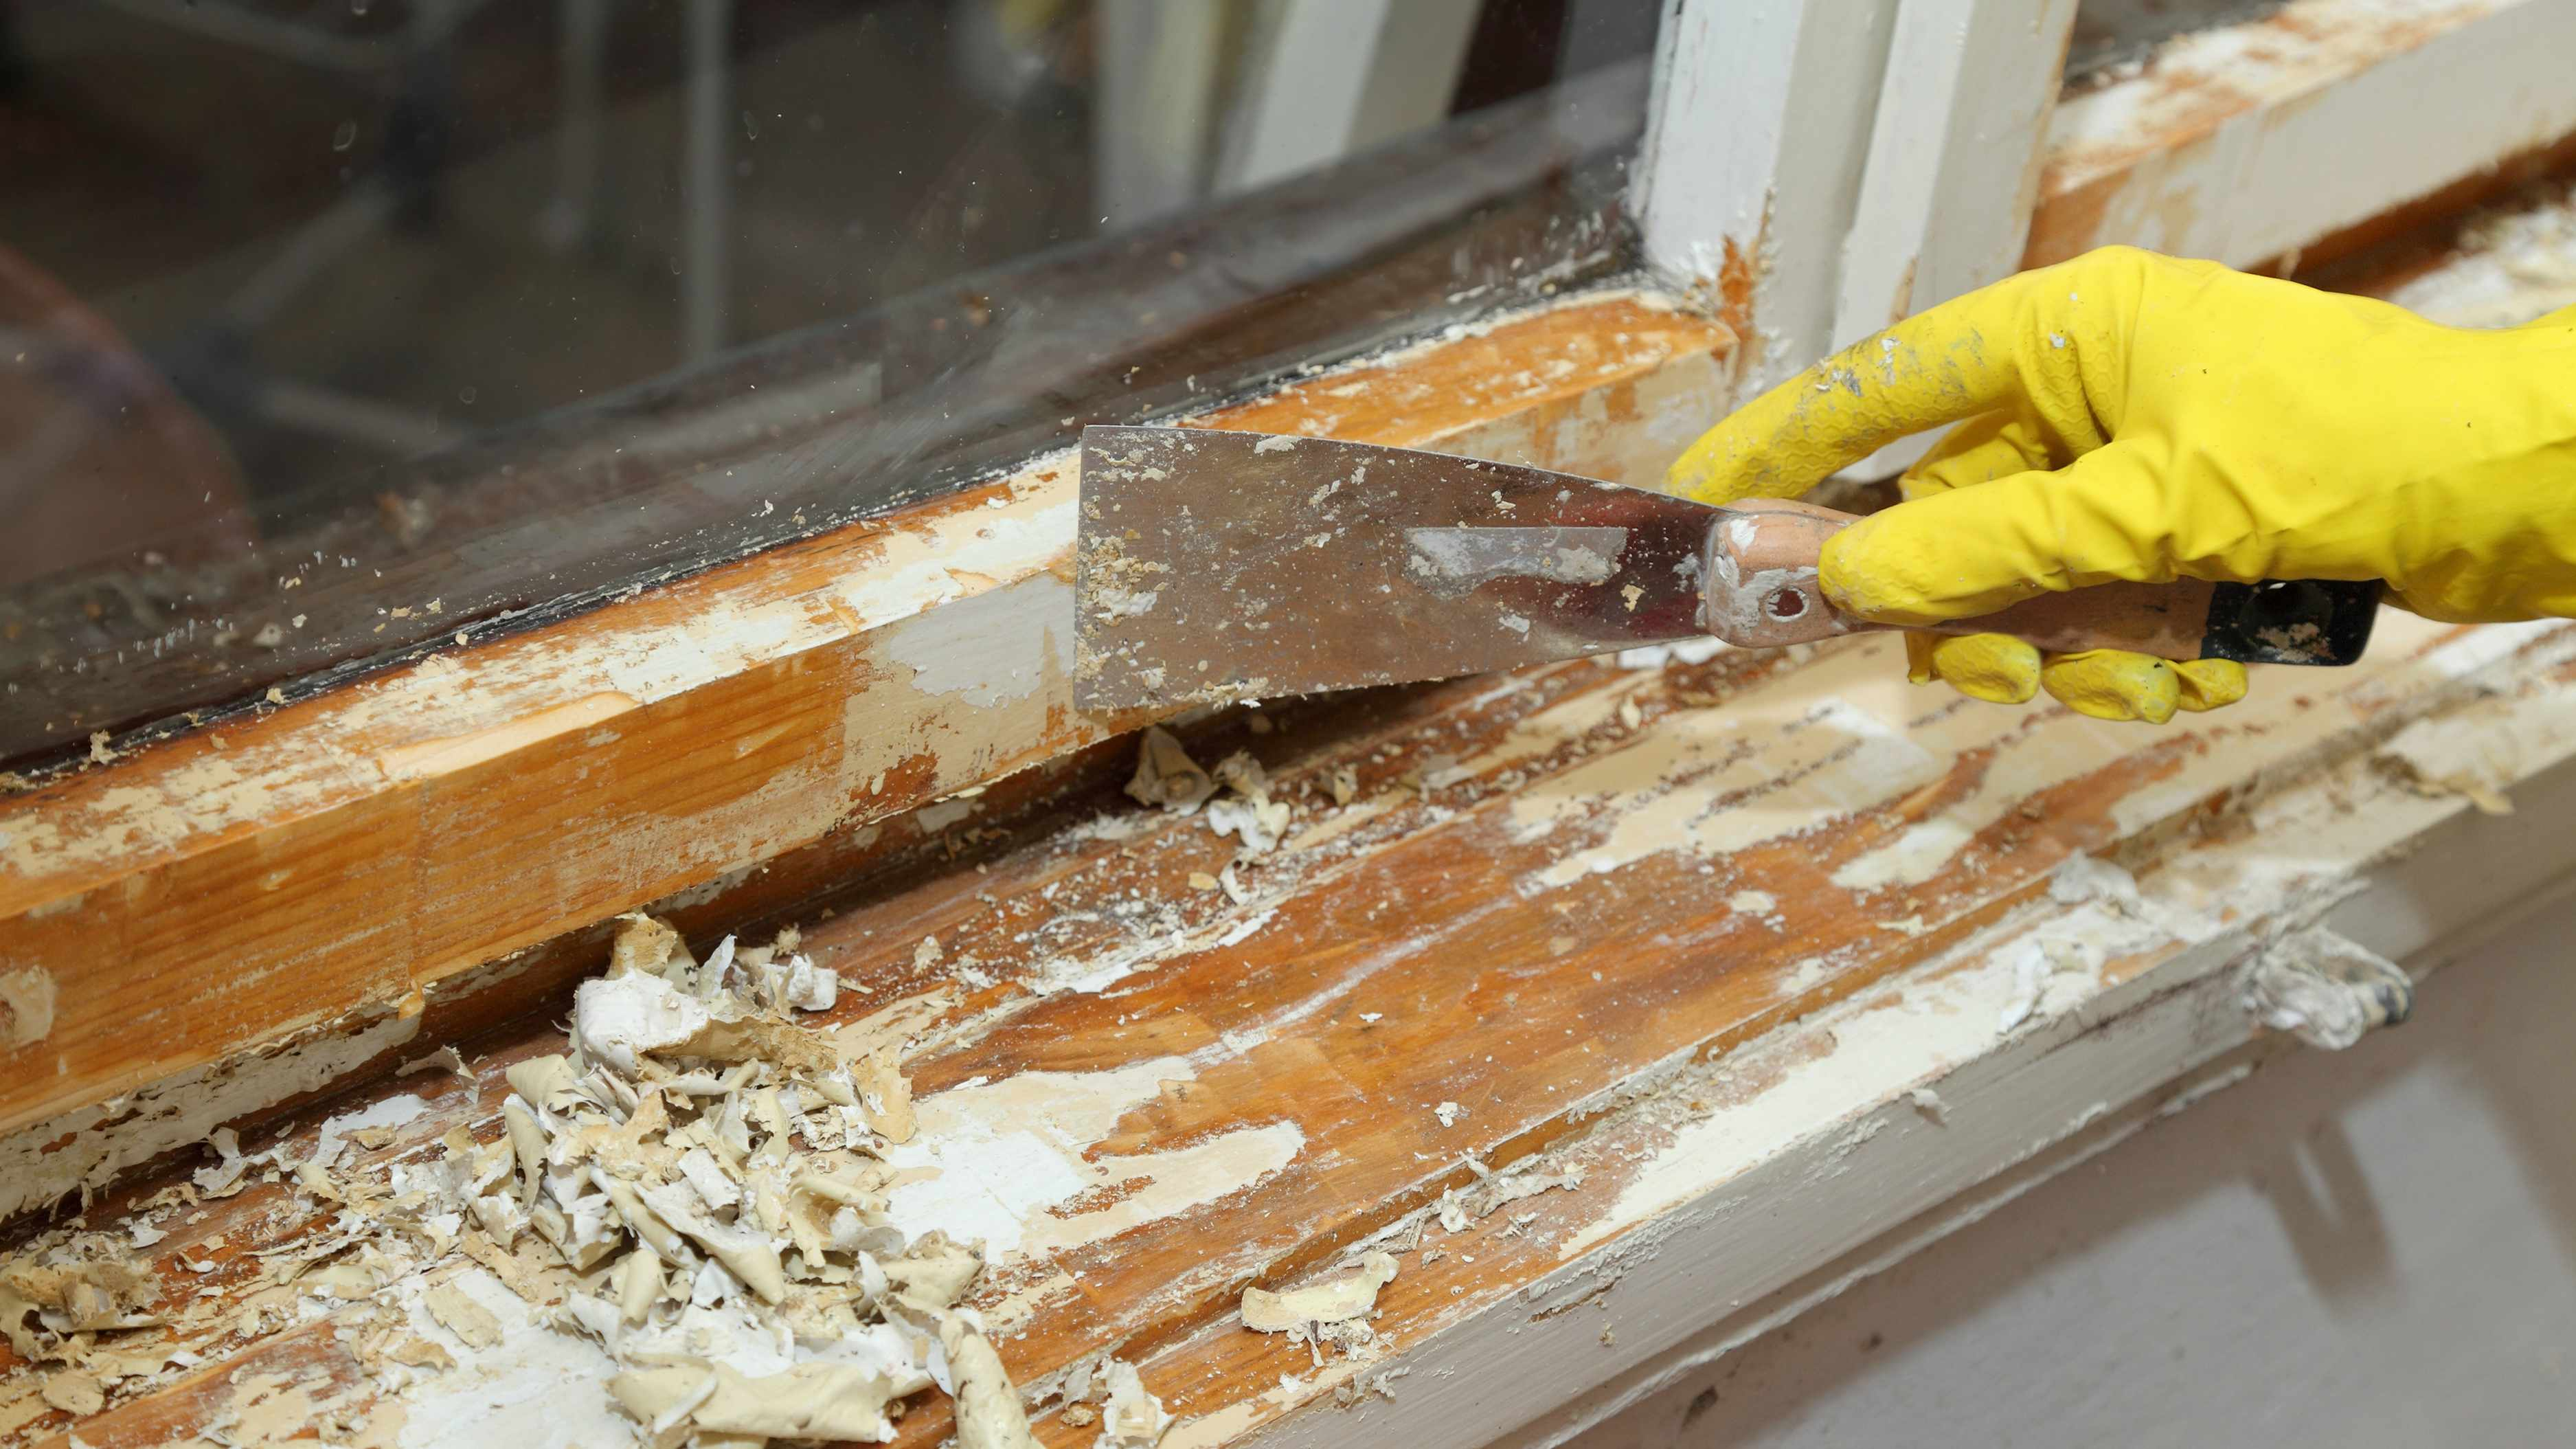 person with gloved hand scraping paint from windowsill